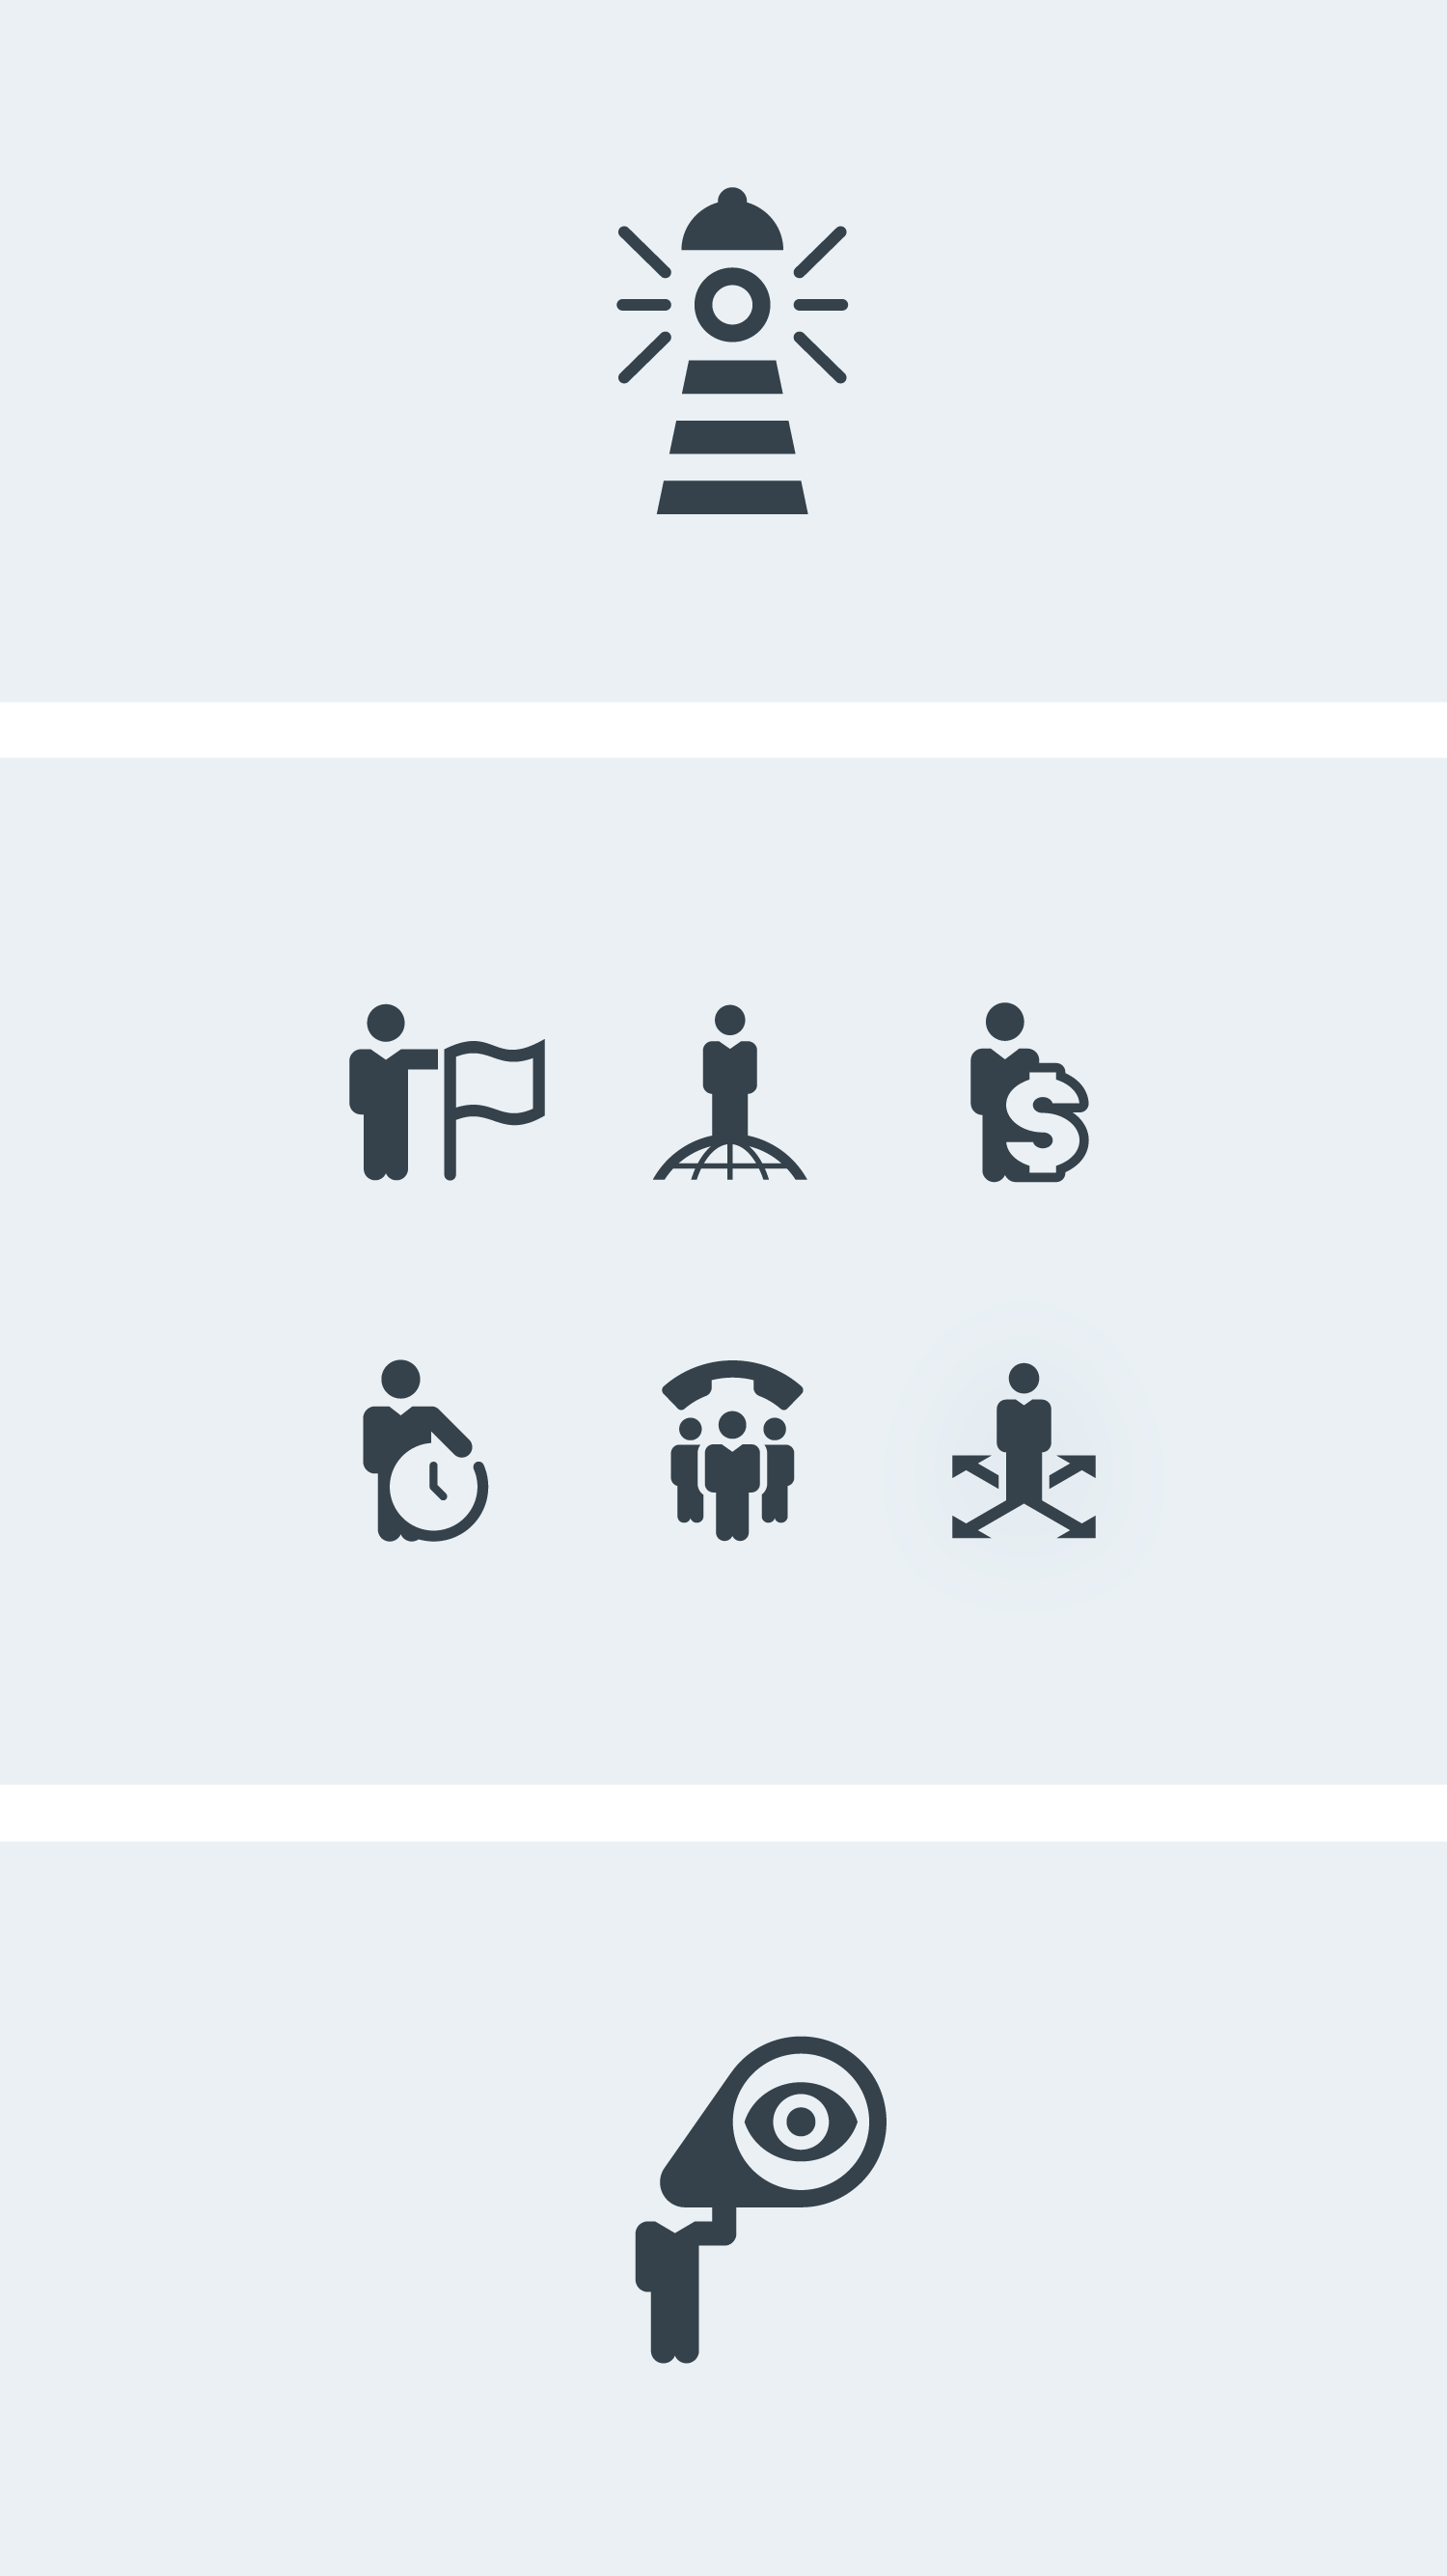 business-people-metaphors-icons-vector